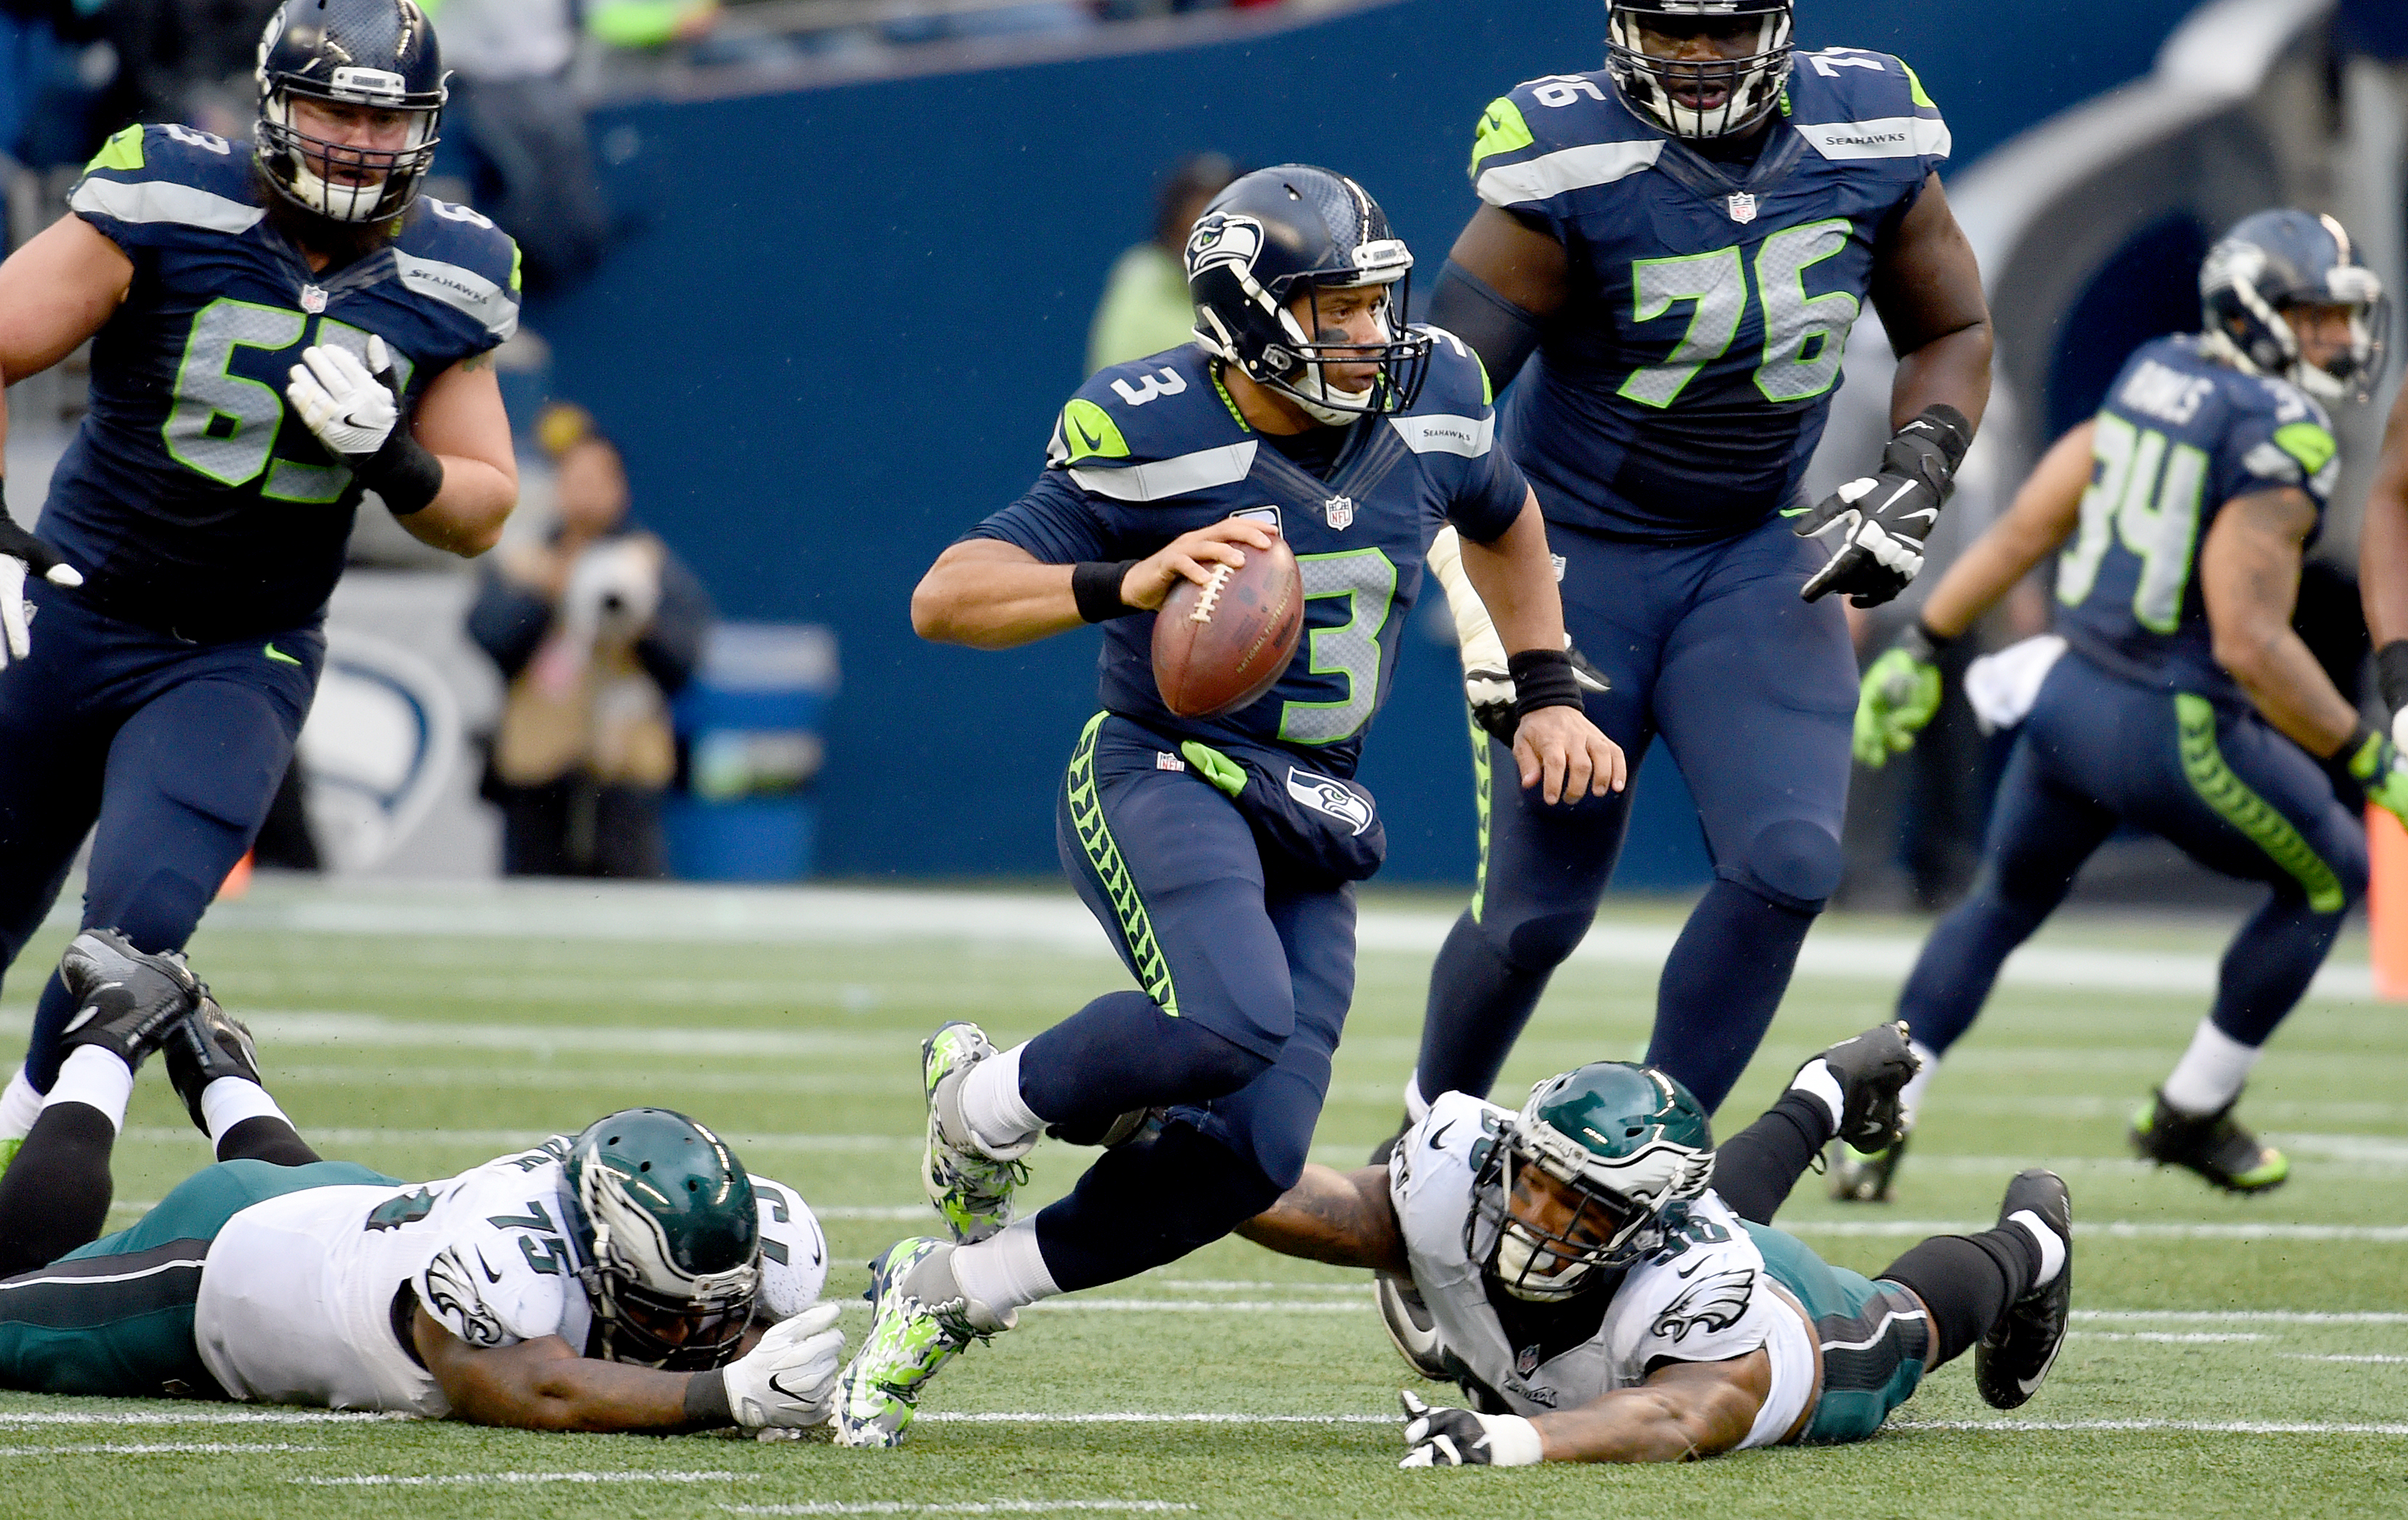 Highlights from Seahawks prime-time 24-10 victory over Eagles